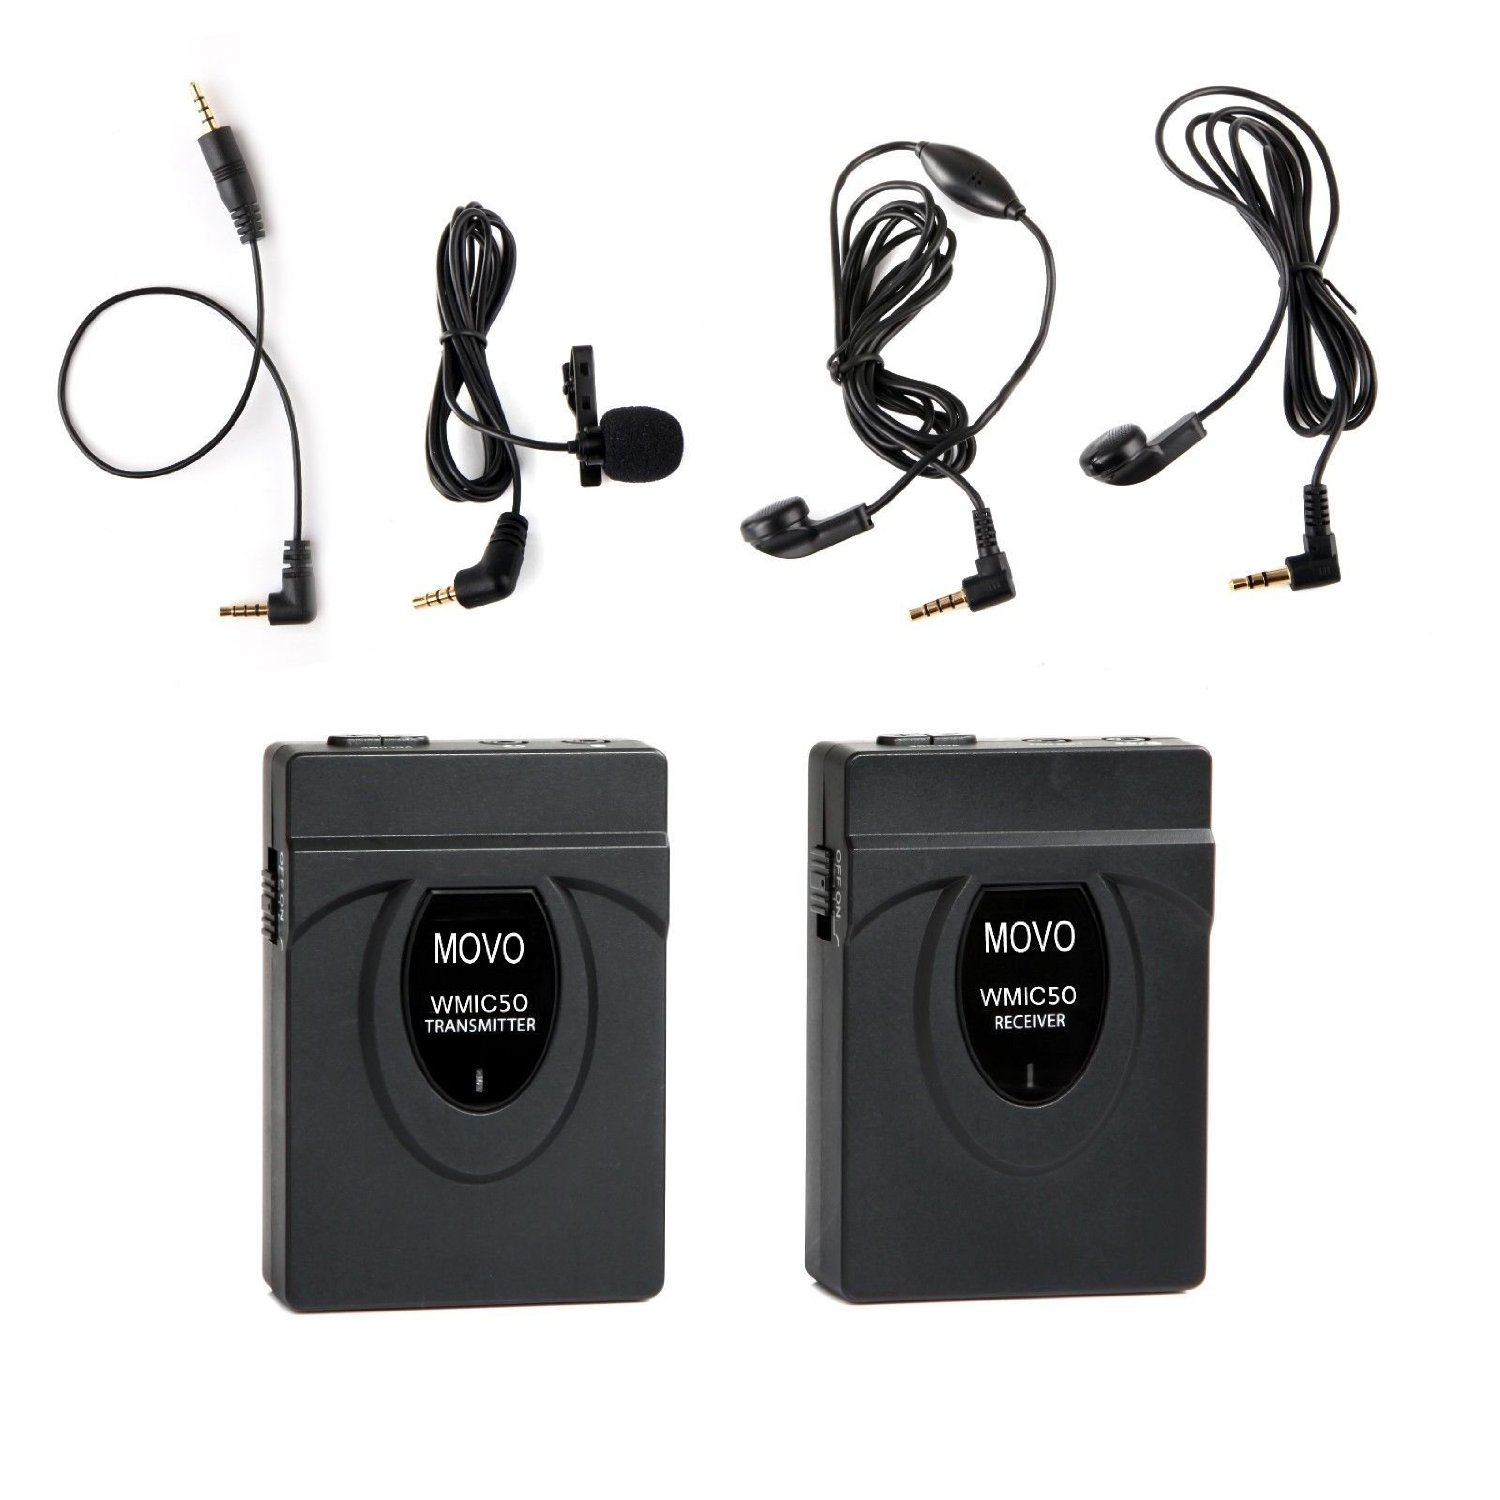 Movo WMIC50 2.4GHz Wireless Lavalier Microphone System with Integrated 164-foot Range... by Movo